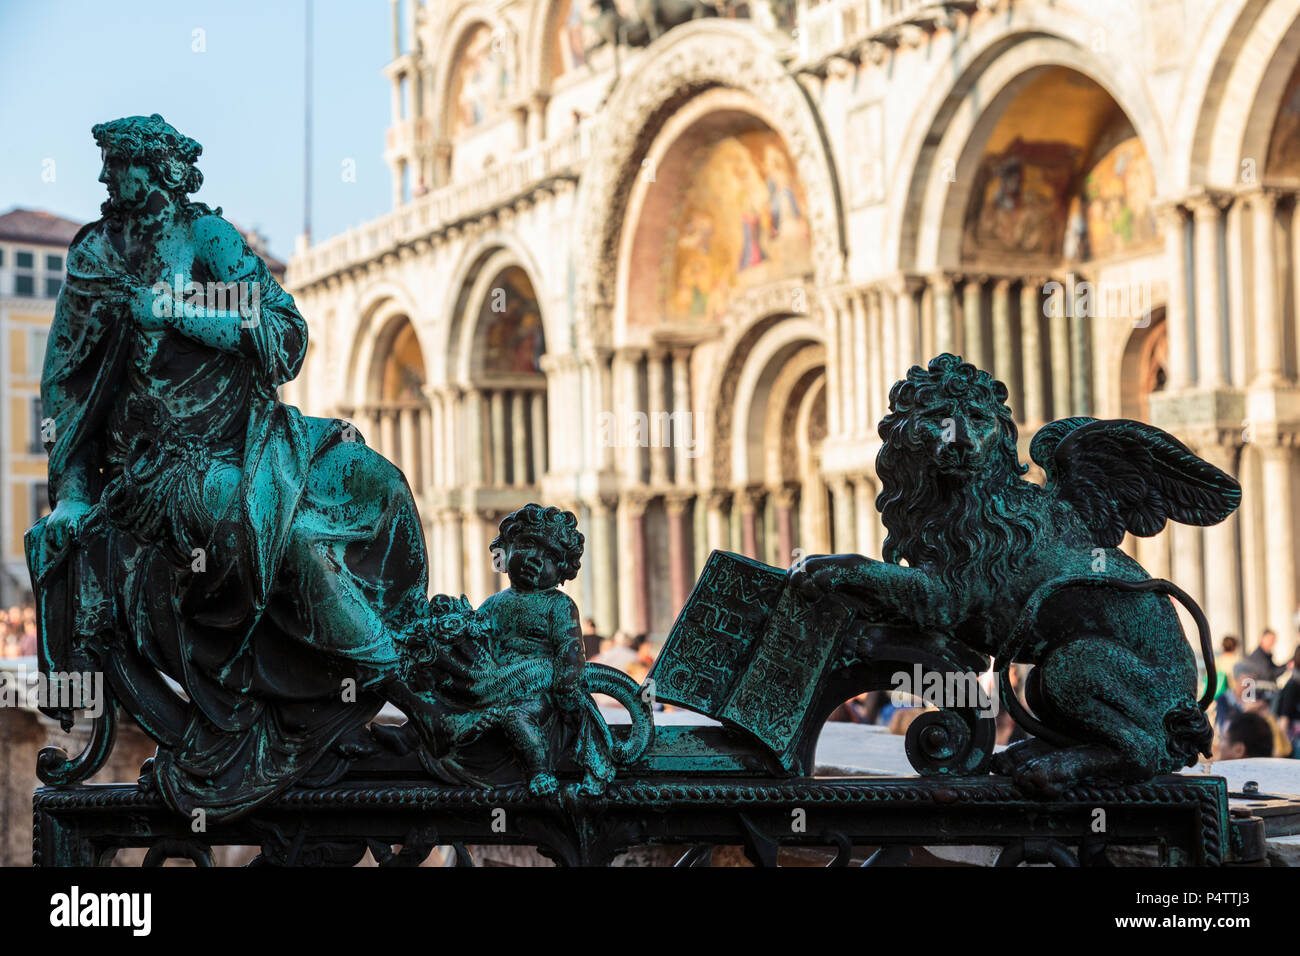 Close-up of patinated bronzes at Campanile entrance with St Marks Basilica in background, Piazza San Marco, Venice, Italy. - Stock Image